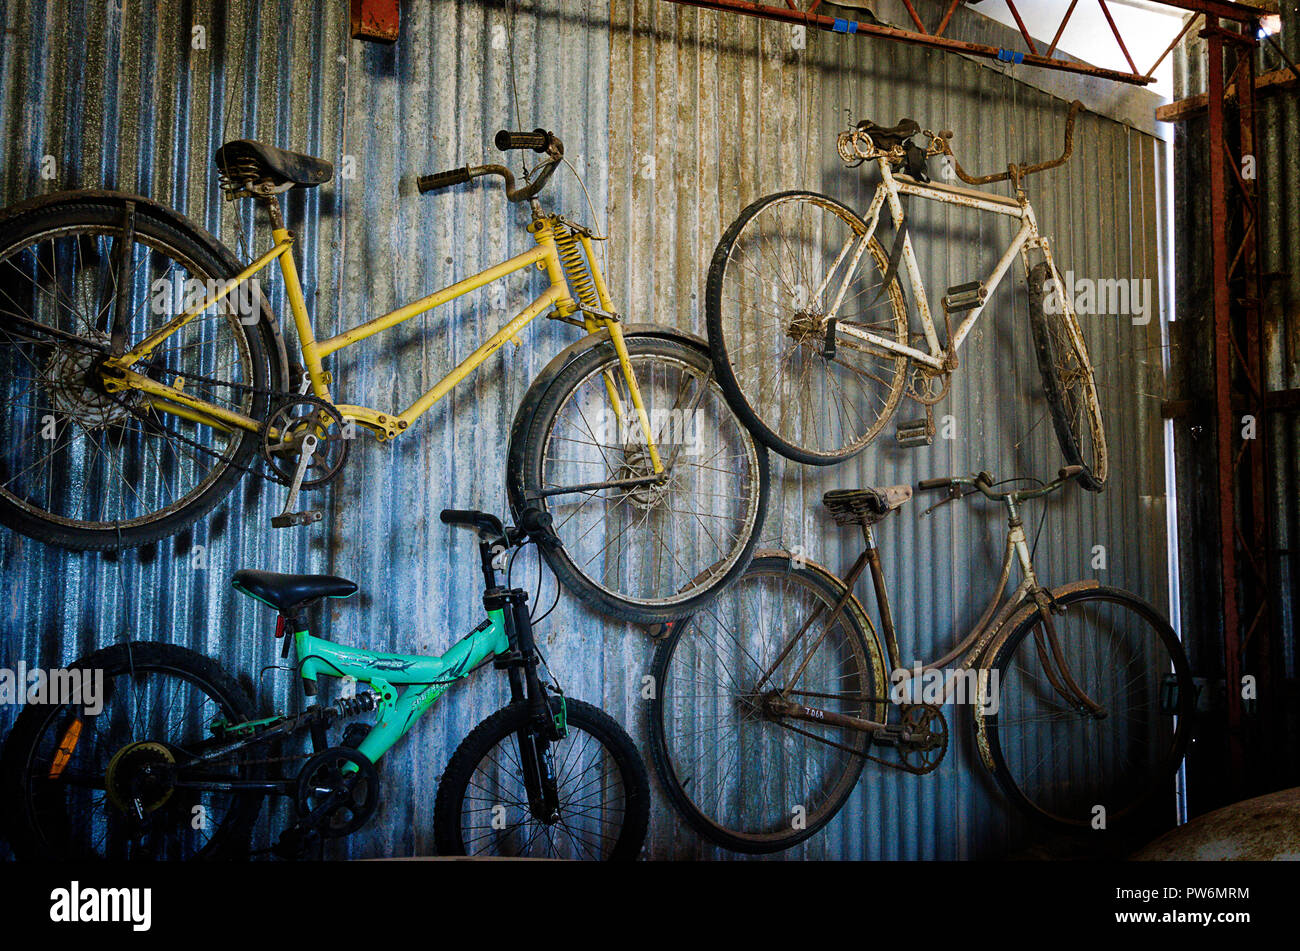 Display of old bicycles, cars and carriages at National Trust Ceduna School House Museum, Ceduna SA - Stock Image